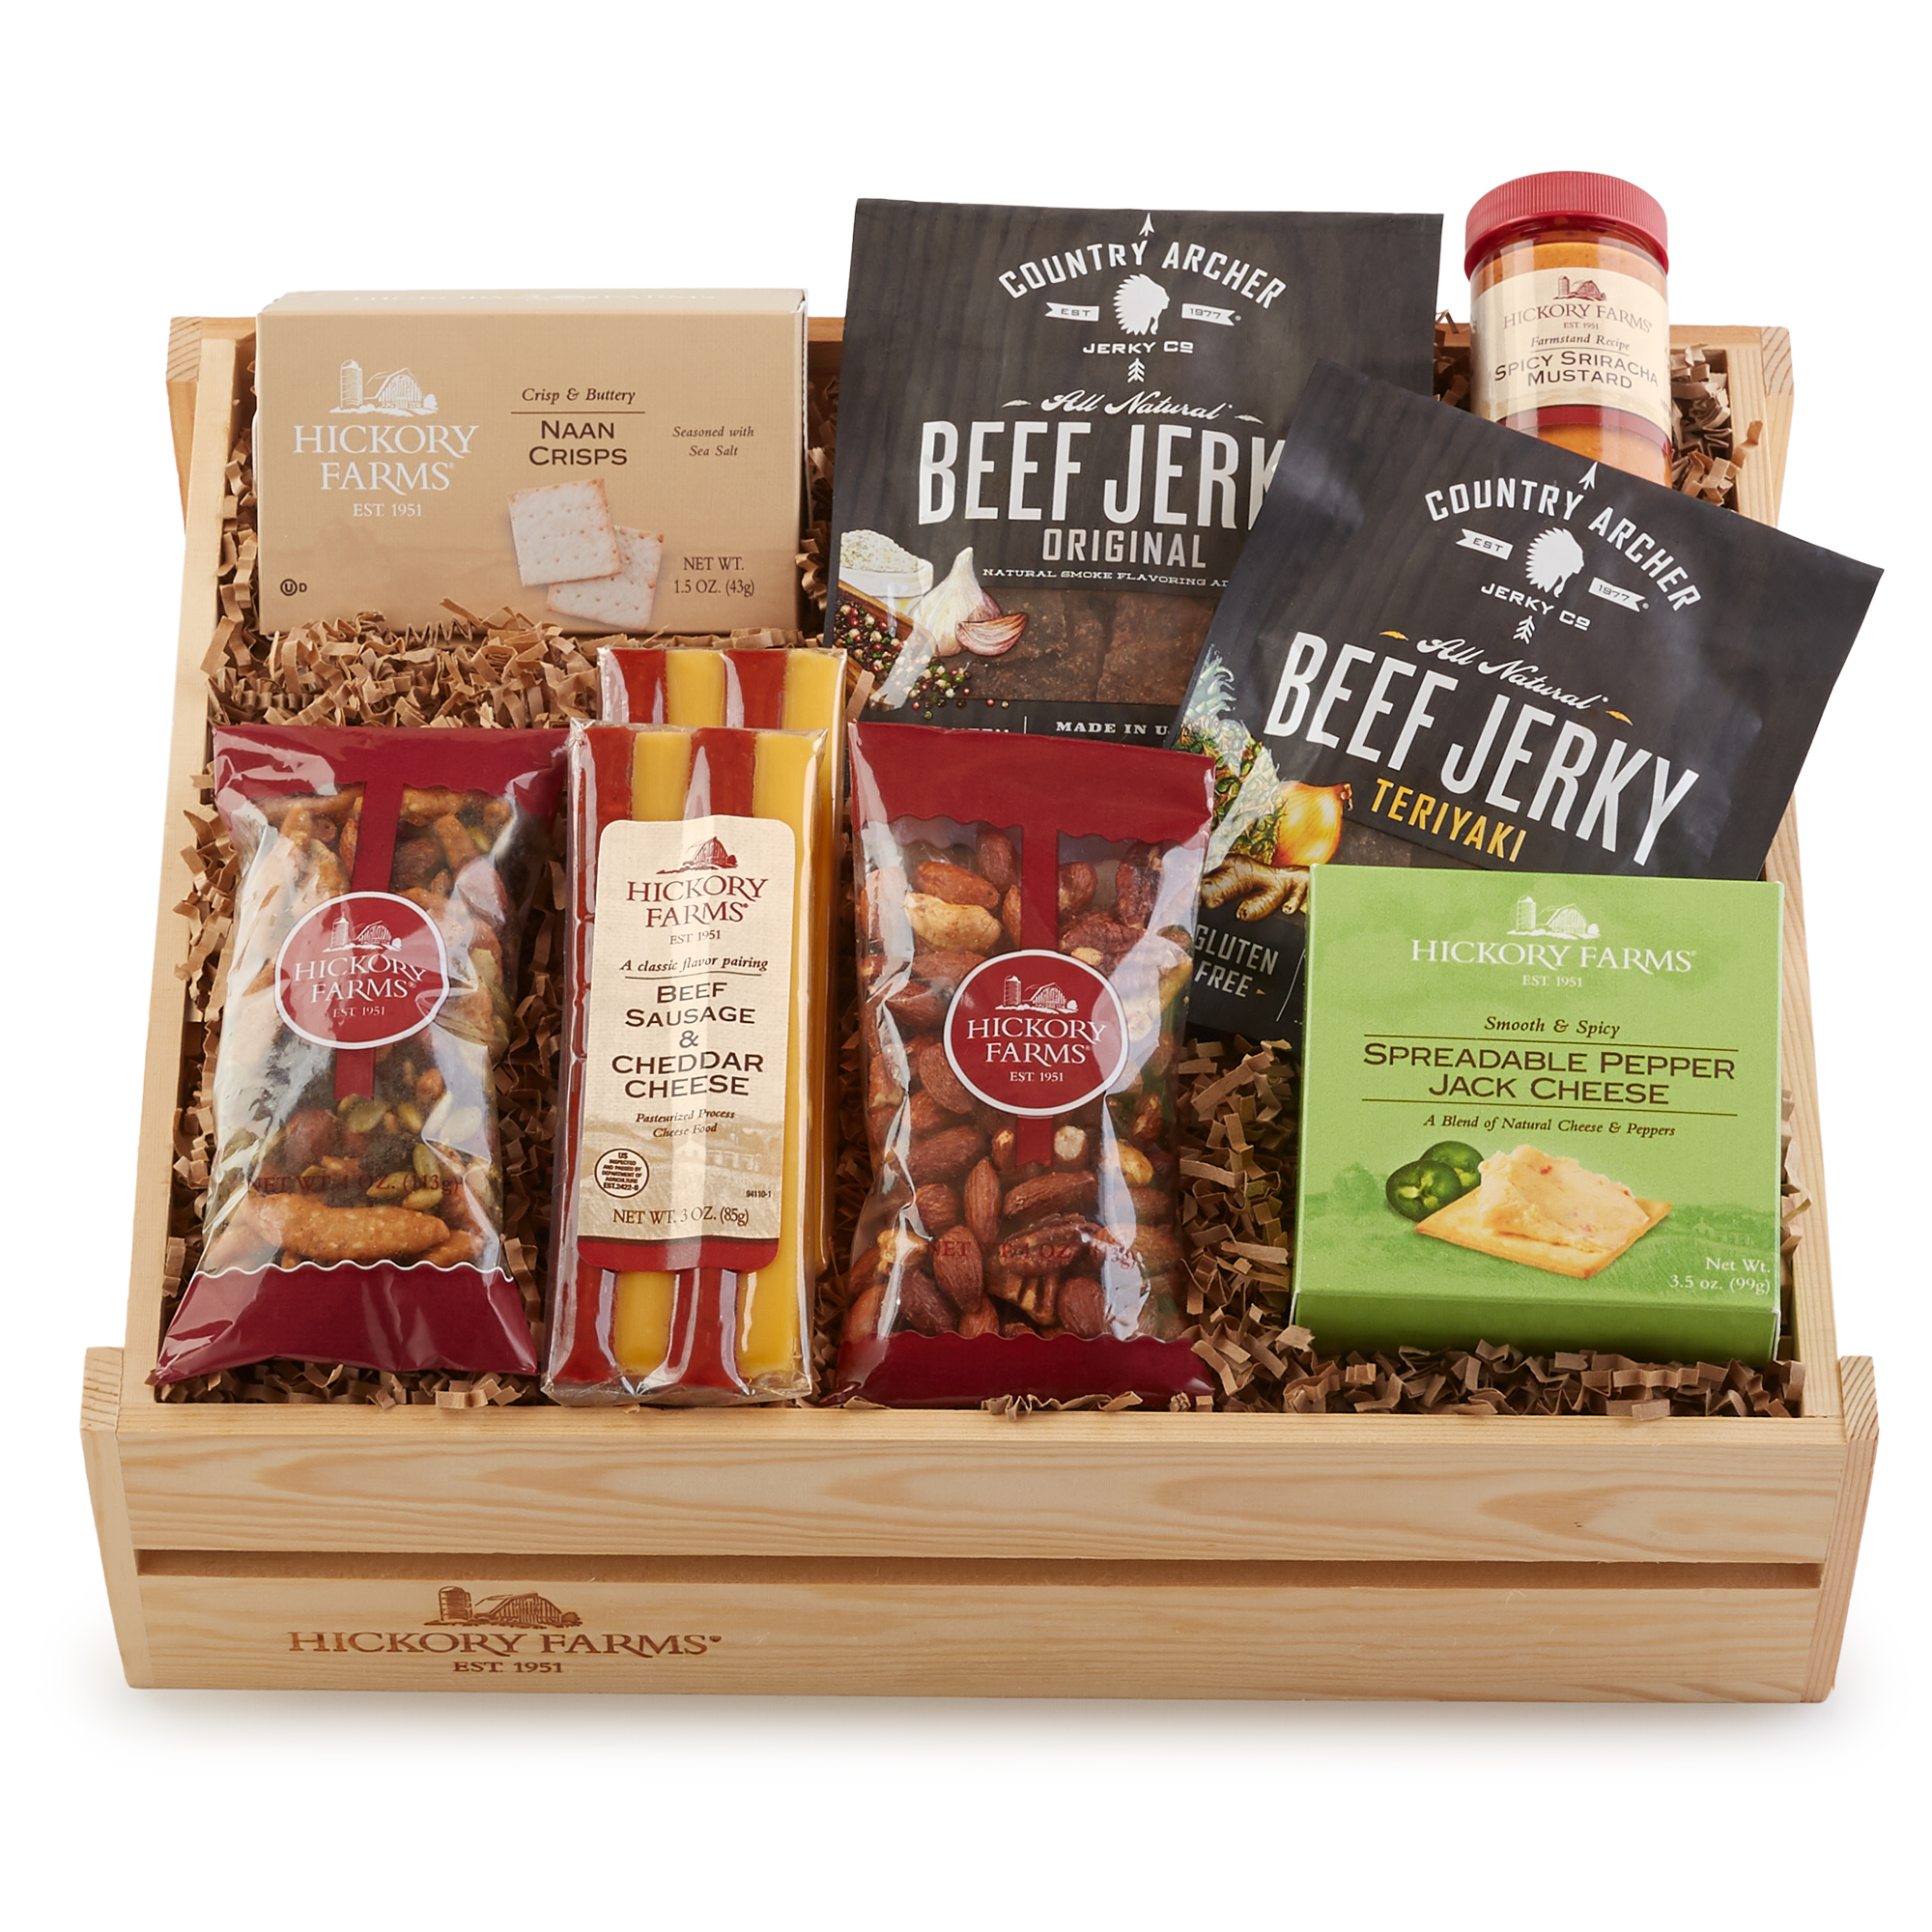 new product gift guide - Spicy & Savory Snack Crate